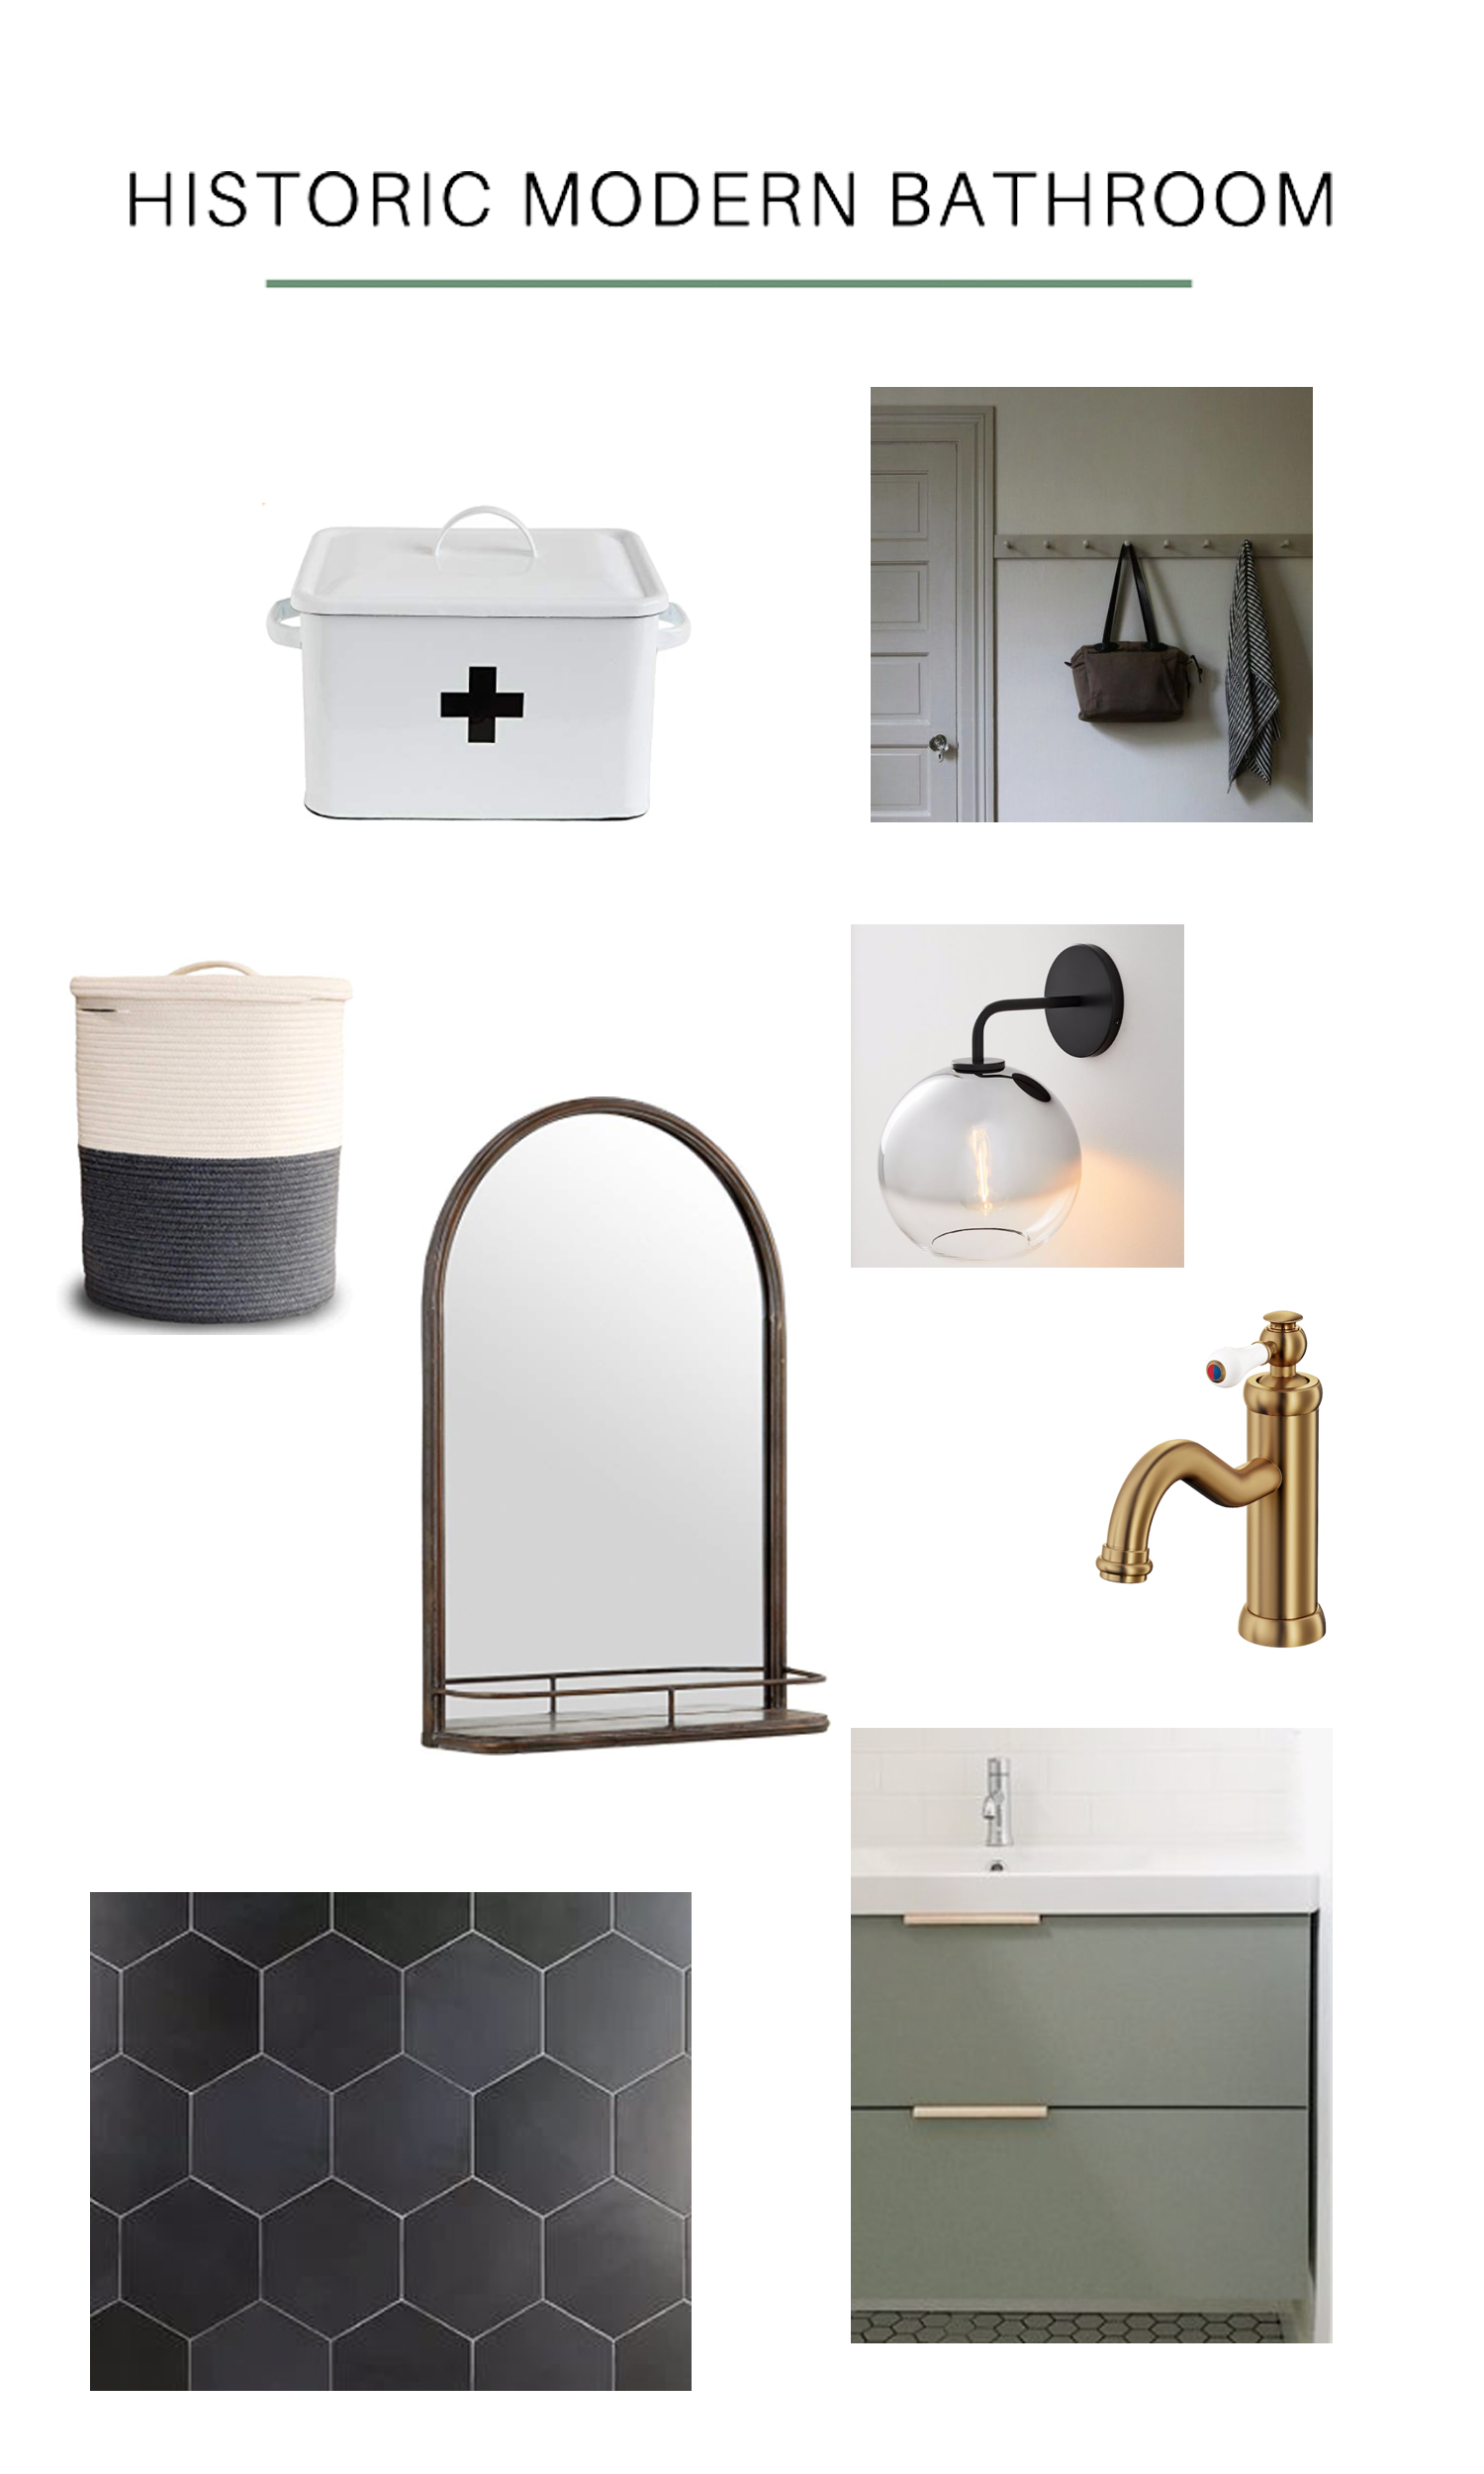 The $1,500 Historic Modern Bathroom Plan with black hexagon floors, ikea vanity, and modern matte black lights    designed by DIY & Home Bloggers This Giant Life #moodboard #bathroominspo